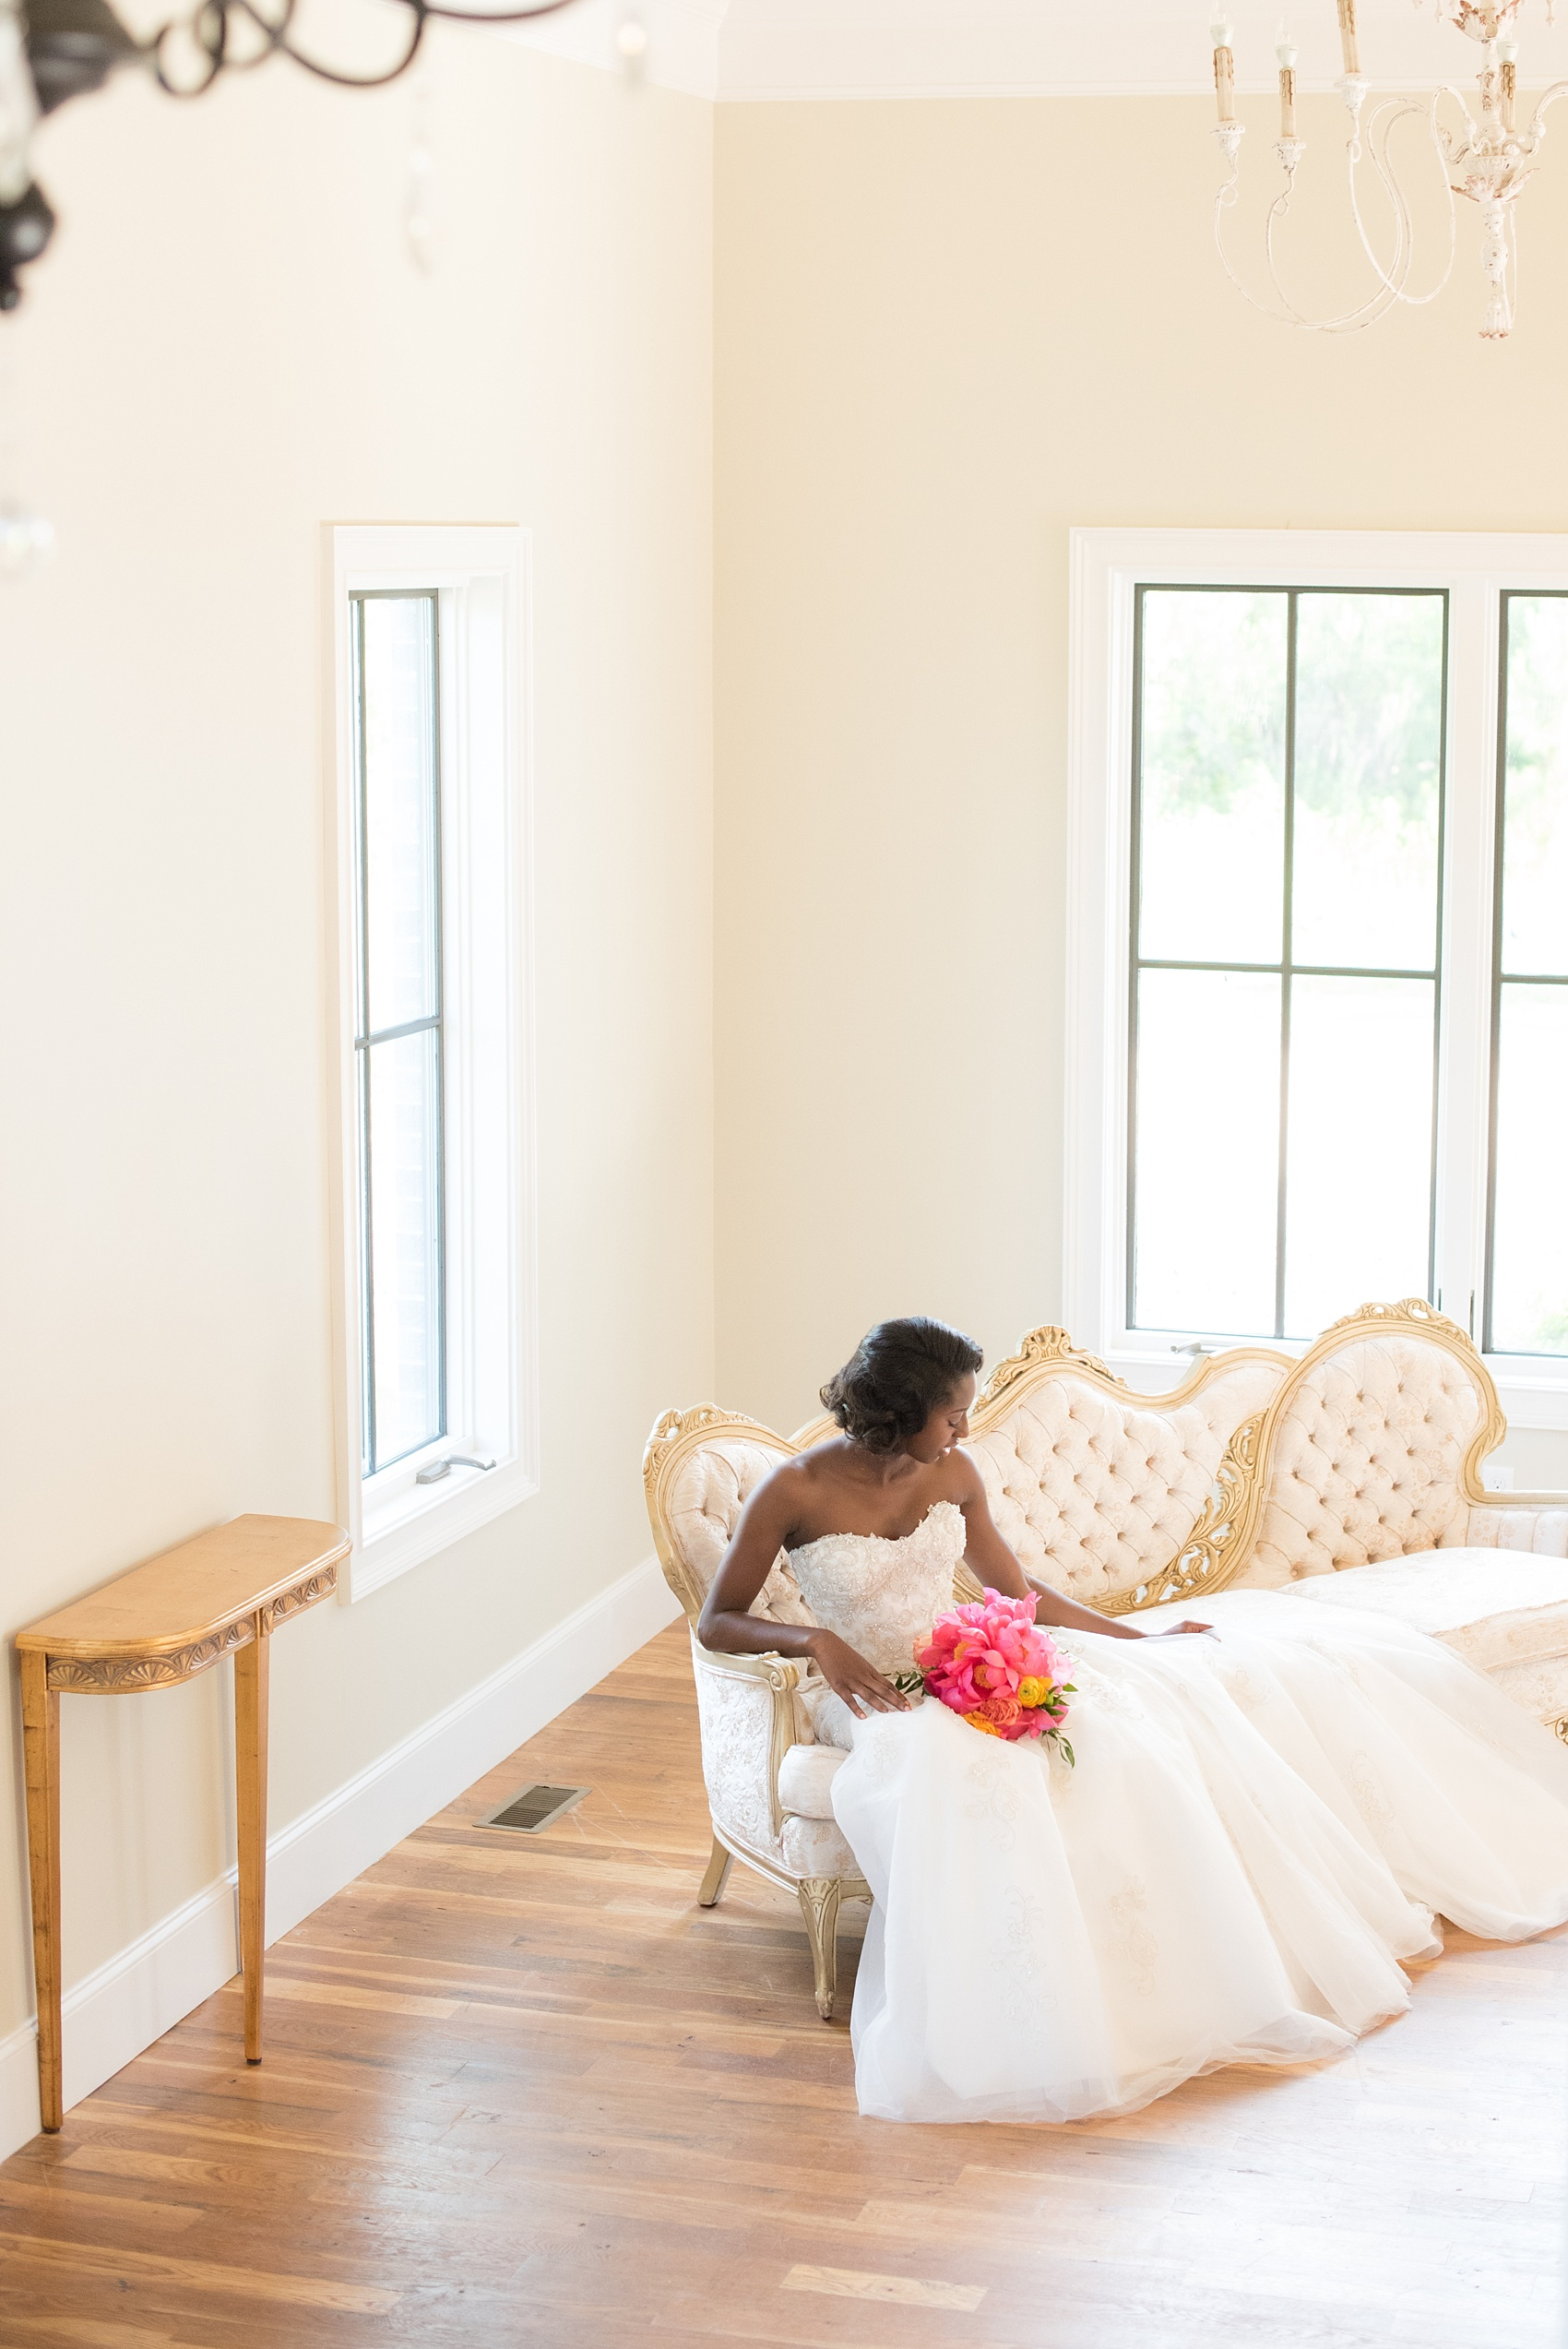 Mikkel Paige Photography photo at The Bradford, NC. Bride on an ivory sofa inside the elegant NC home.